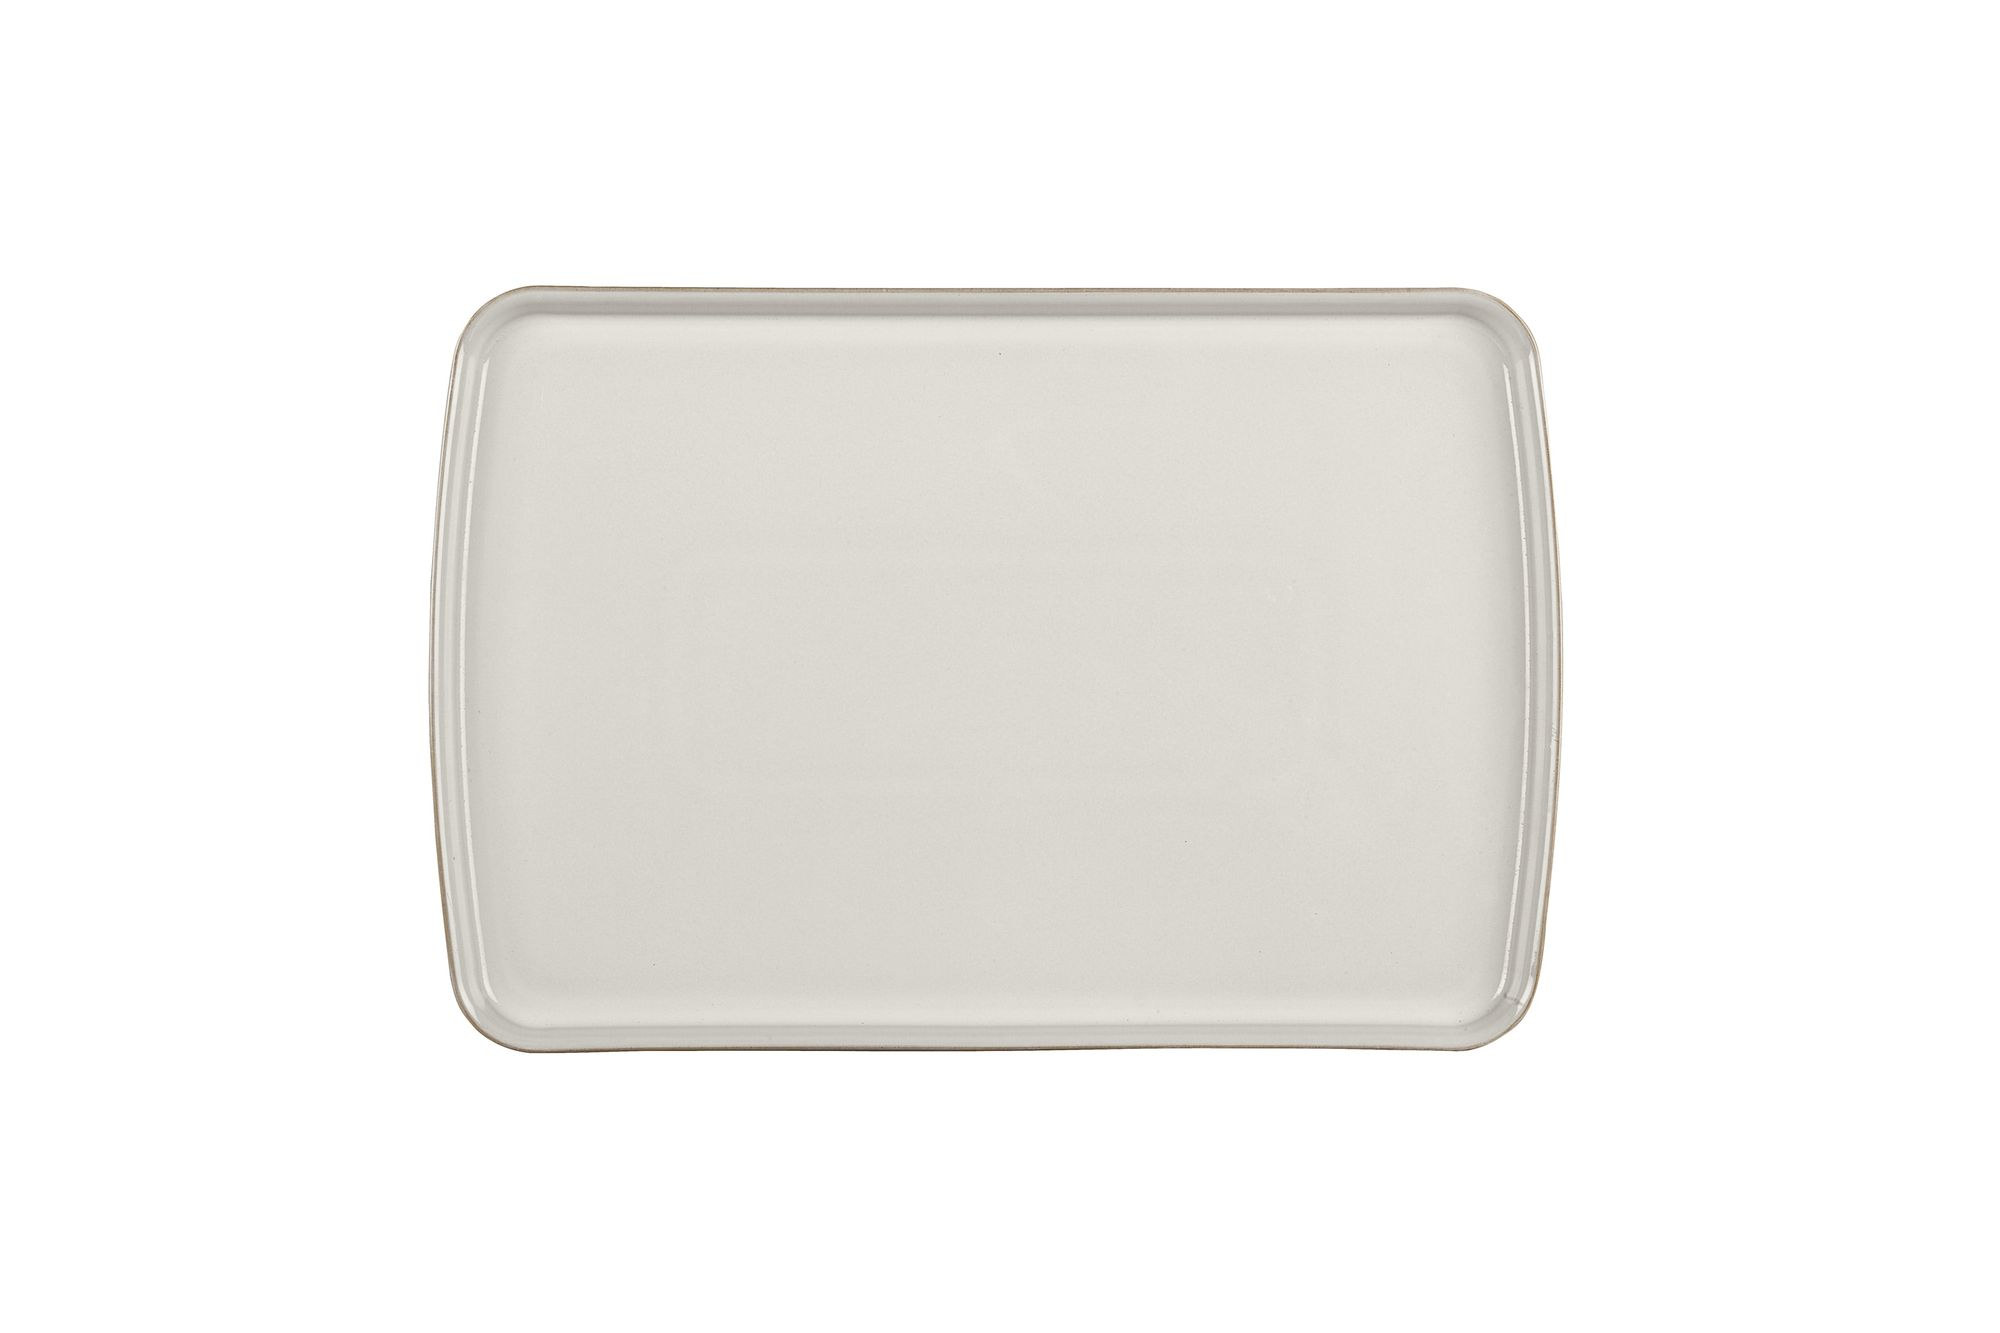 Denby Natural Canvas Rectangular Platter 39 x 26cm thumb 1